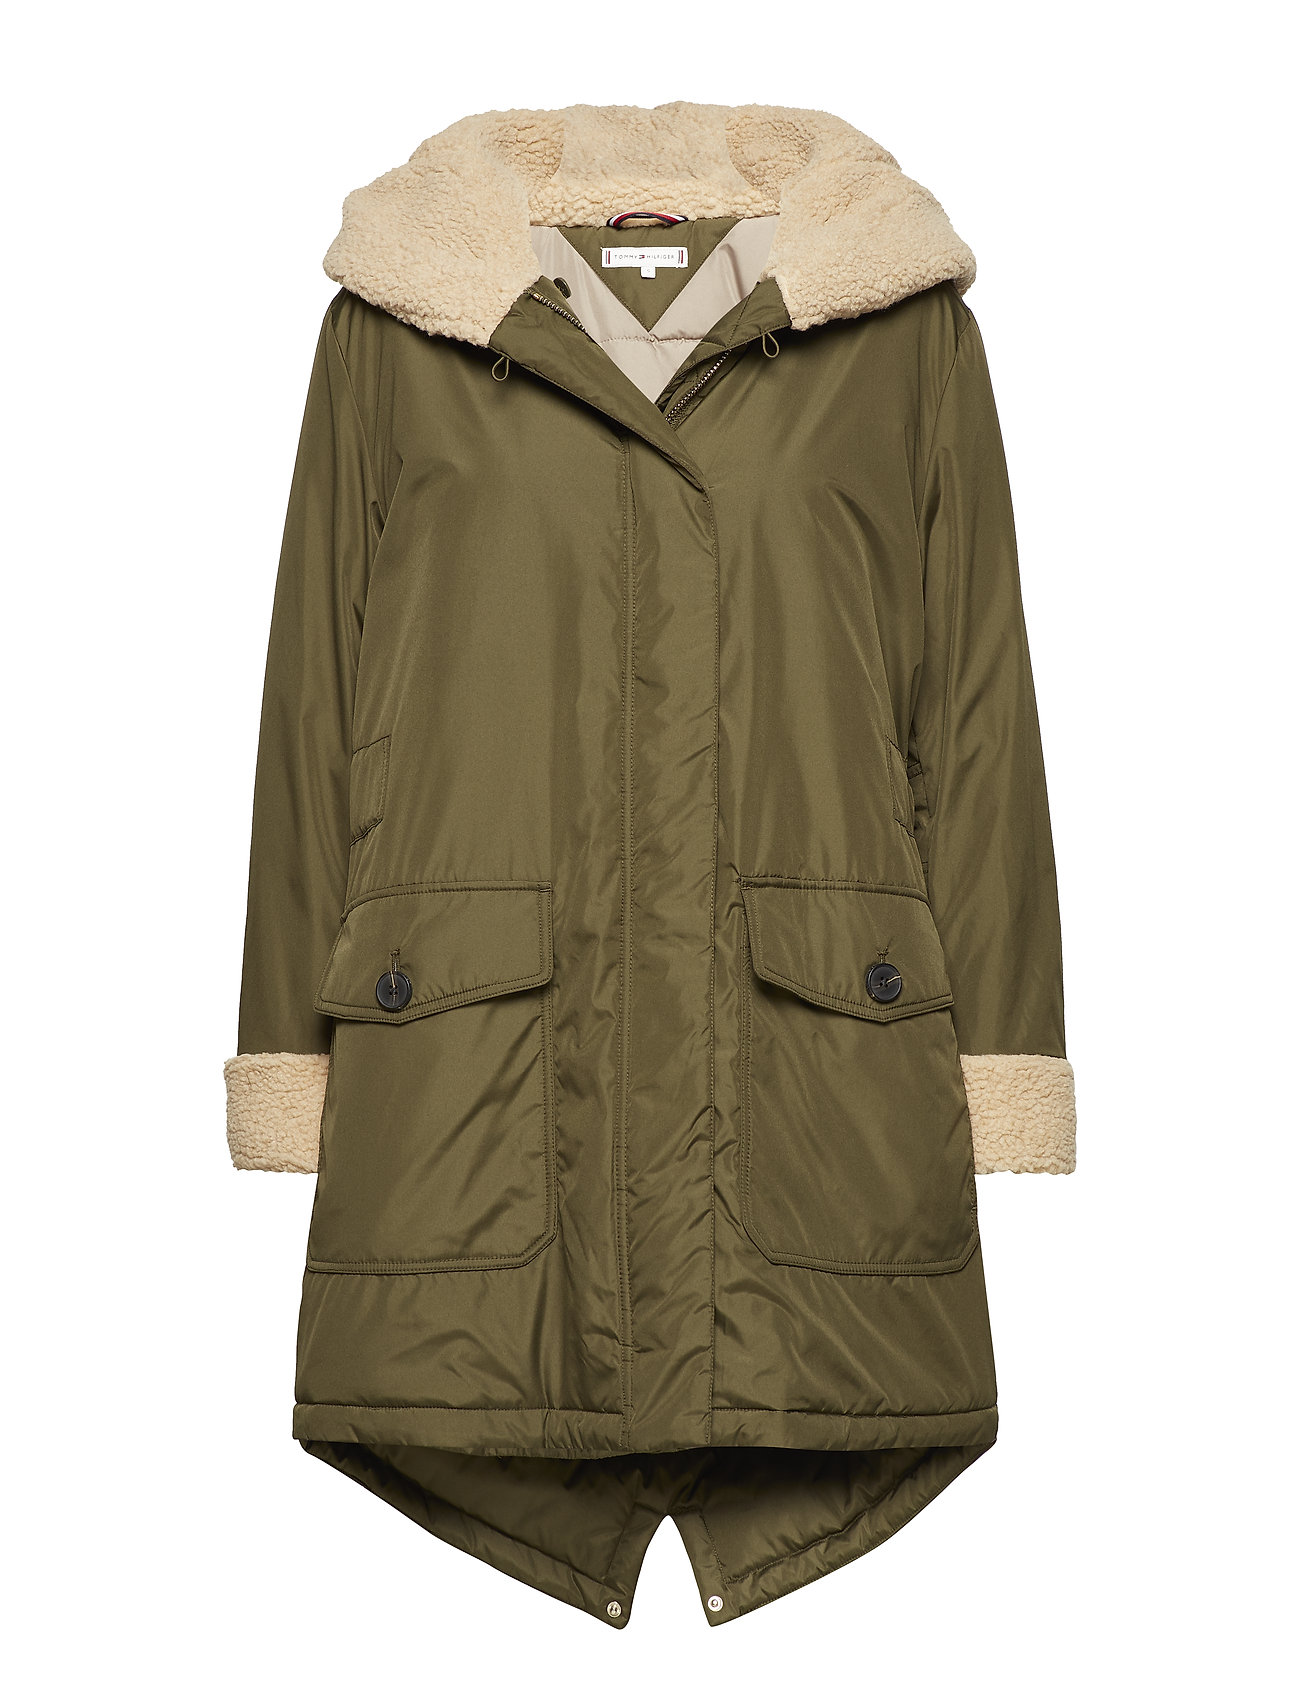 grandioso Plano inferencia  Tommy Hilfiger Alana Teddy Long Parka (Olive Night), (244.30 €) | Large  selection of outlet-styles | Booztlet.com